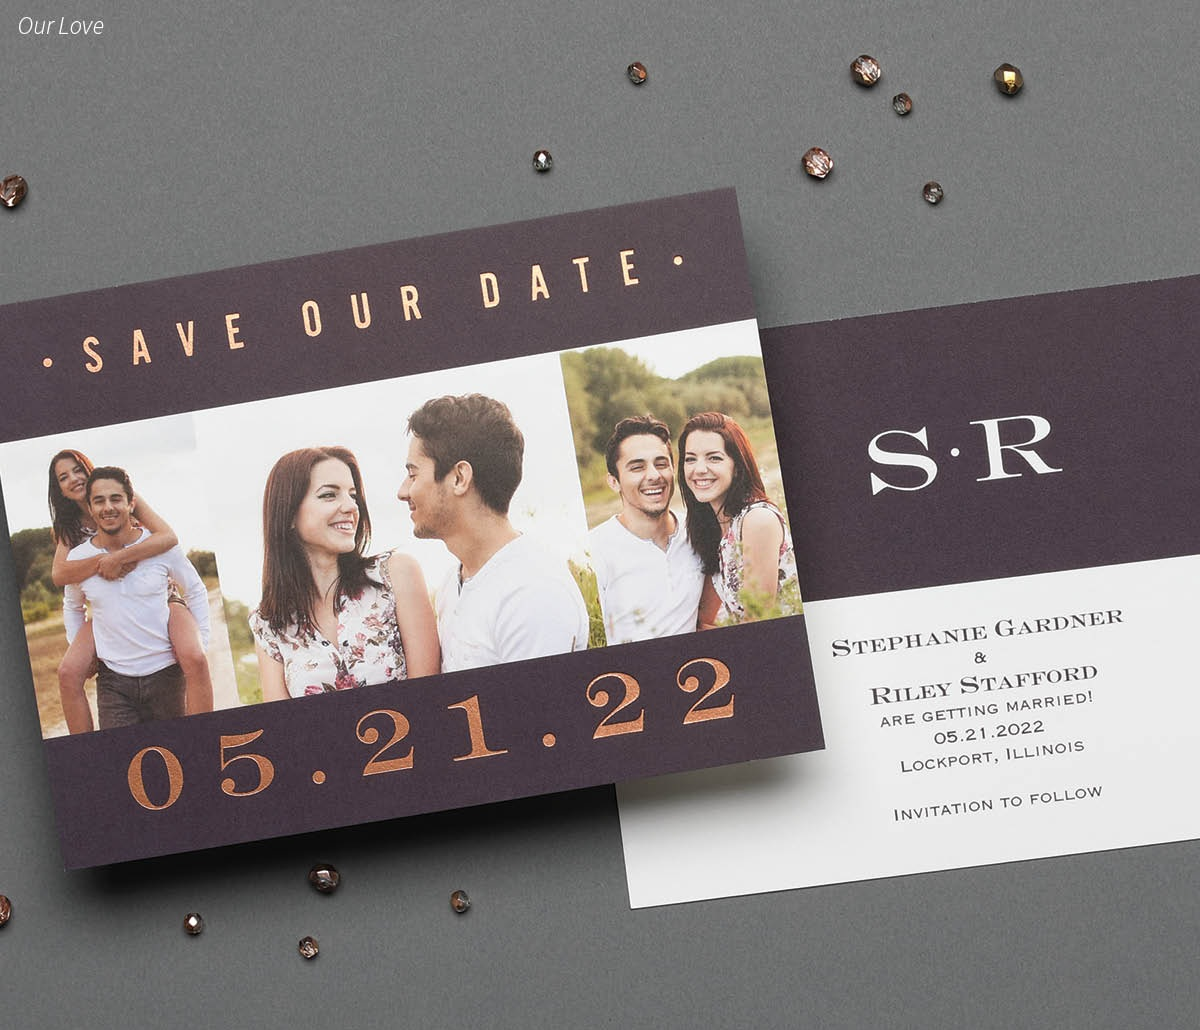 PRE-WEDDING - Save the Dates, Engagements, Bridal Shower, Parties, Rehearsal Dinner